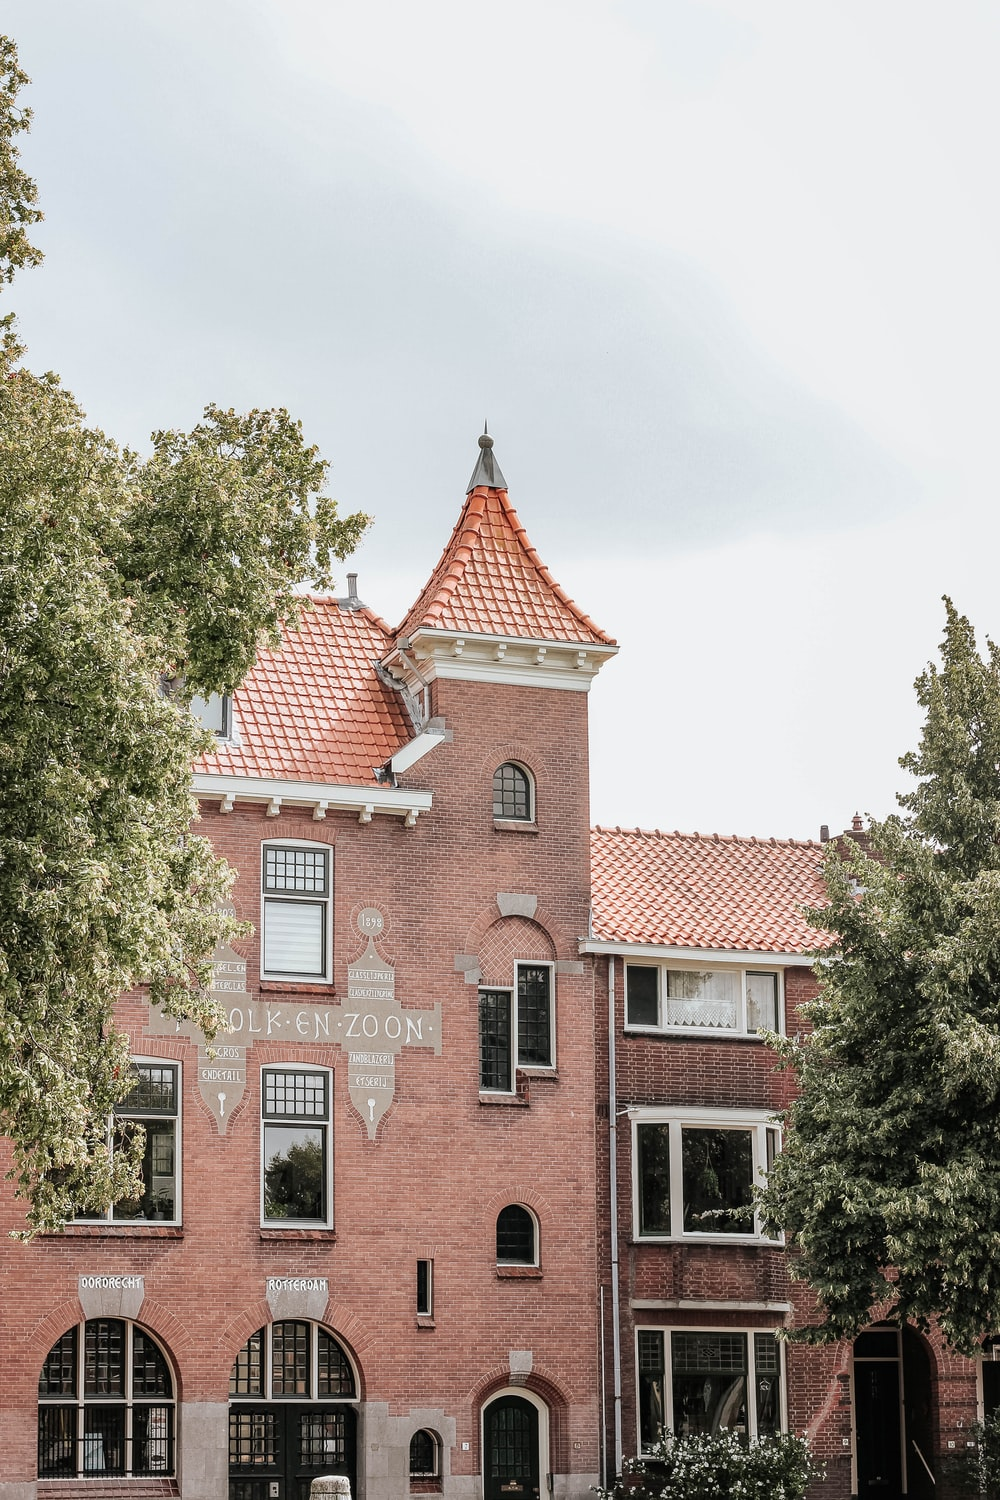 red brick building standing near trees under cloudy sky